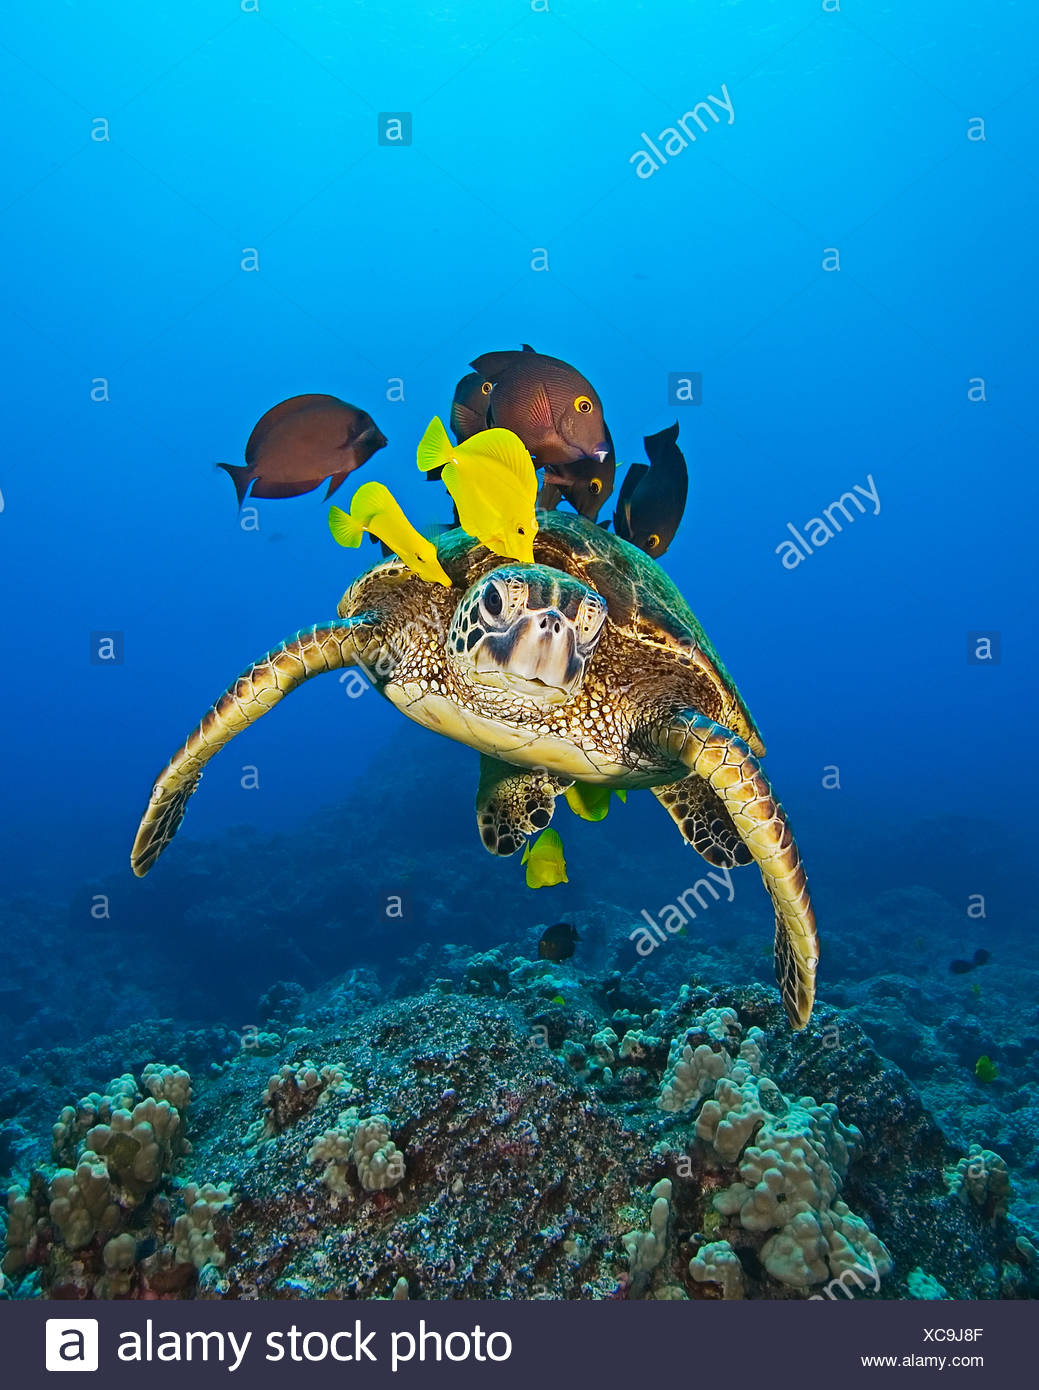 Green Sea Turtle cleaned by Fishes, Chelonia mydas, Big Island, Hawaii, USA - Stock Image